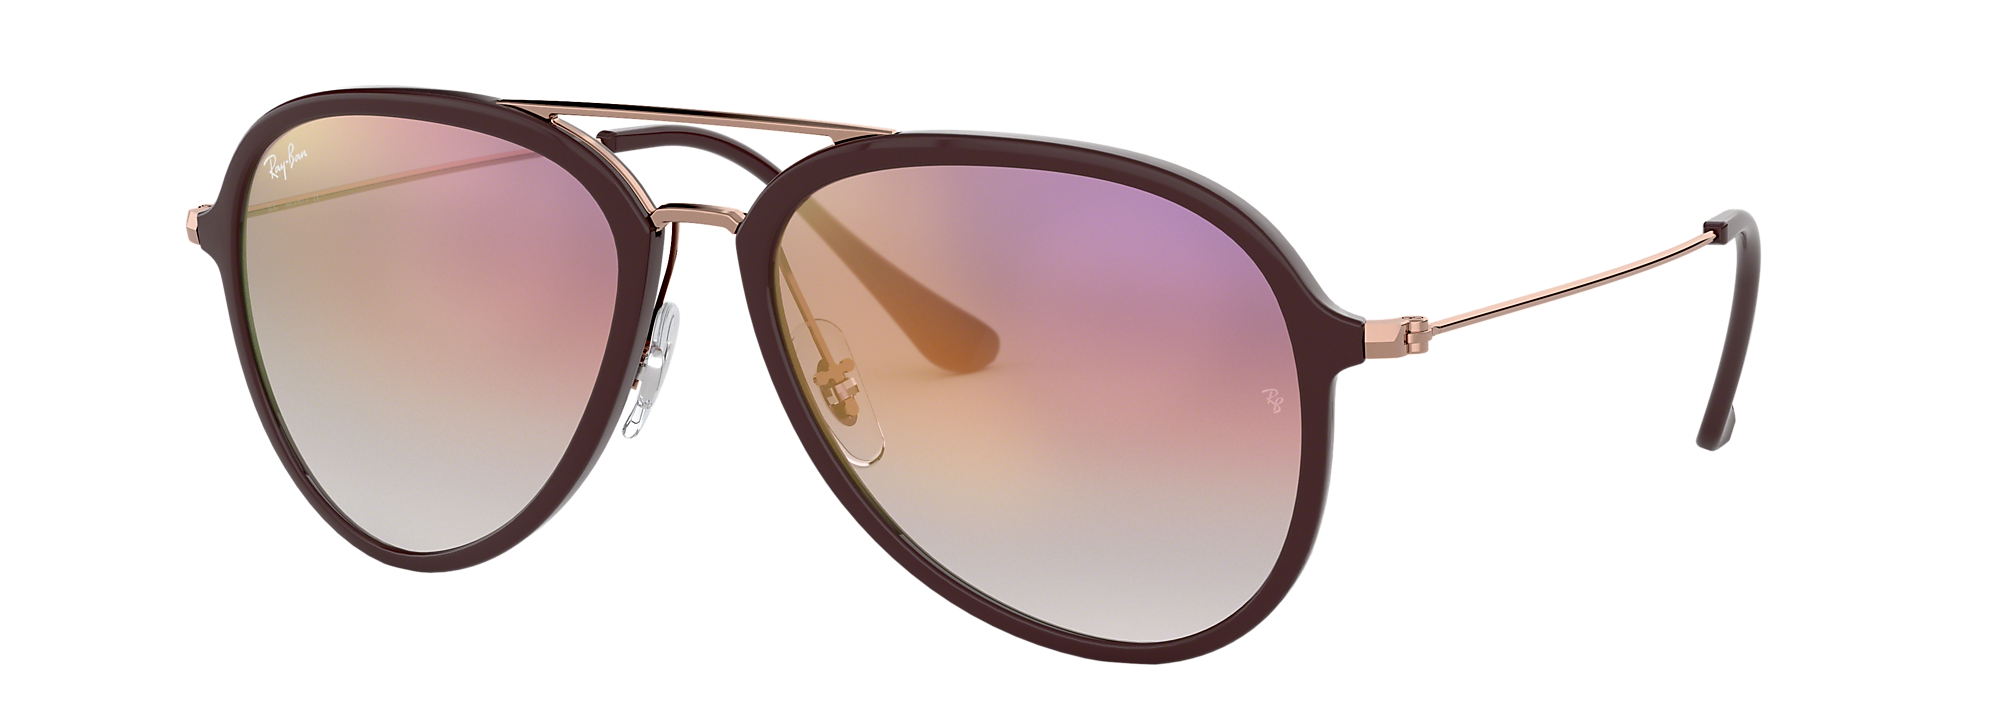 A pair of Ray-Ban aviators